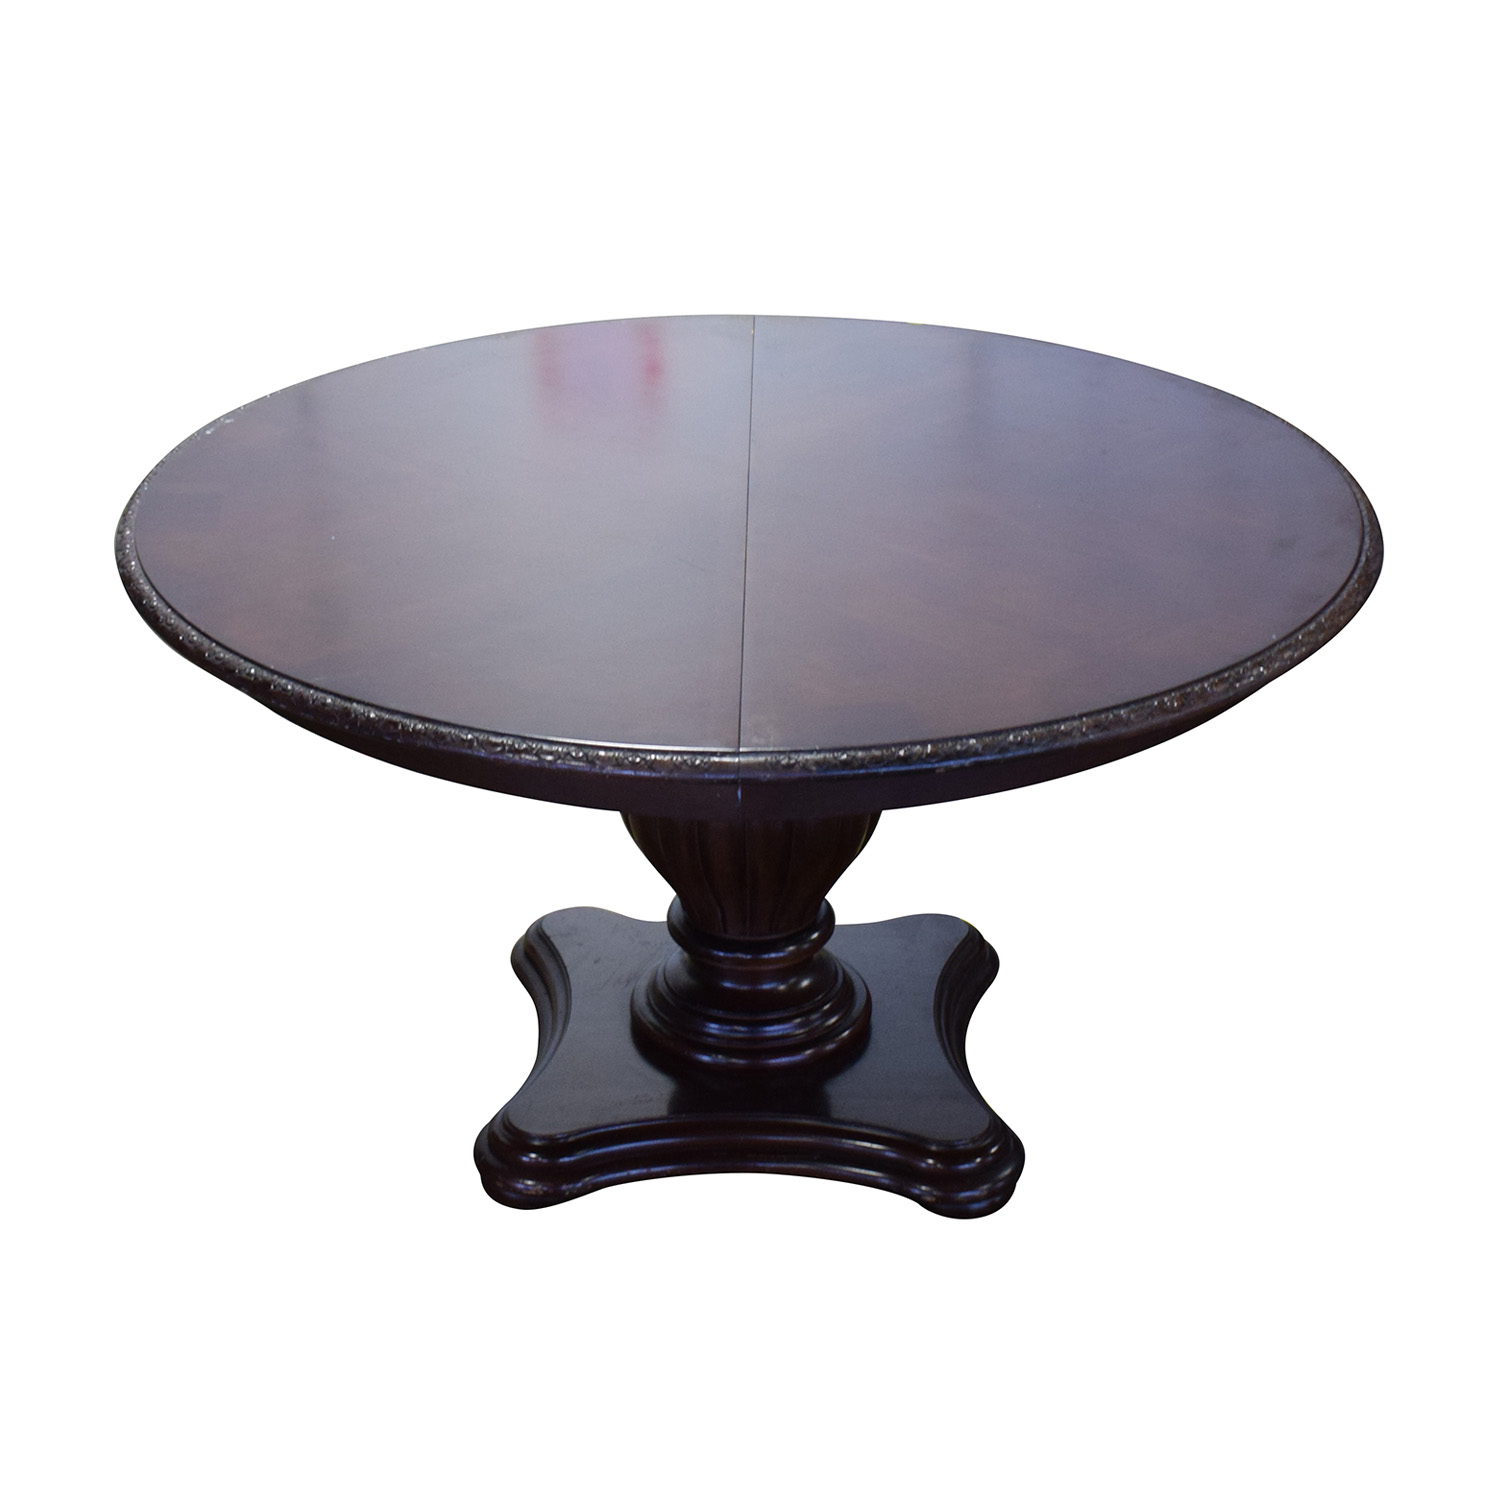 Bernhardt Embassy Row Cherry Carved Wood Dining Table sale